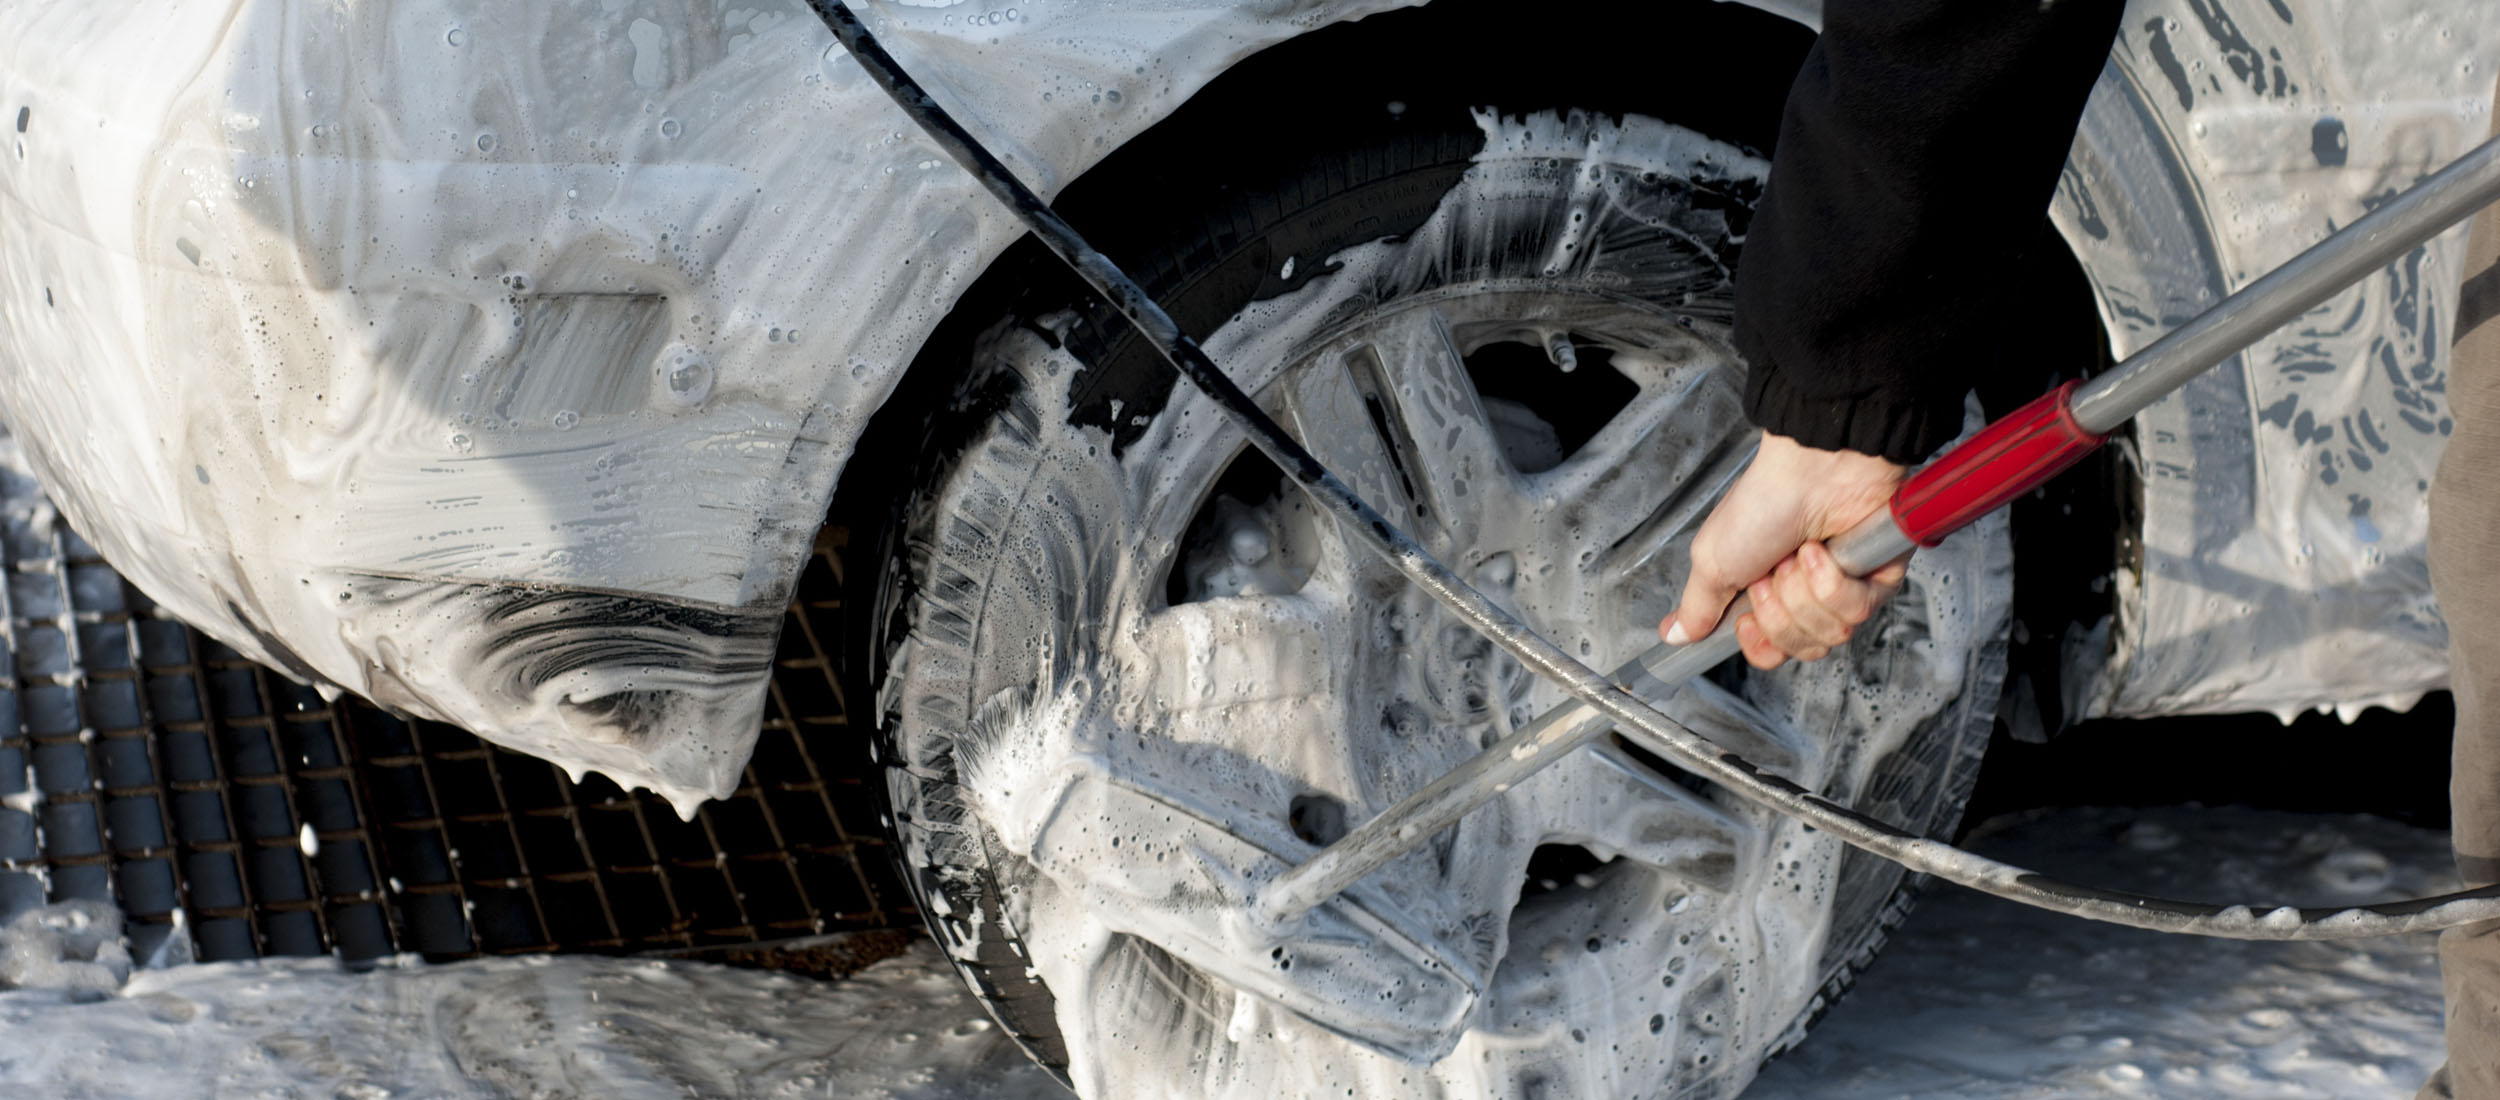 Find Your Nearest Car Wash